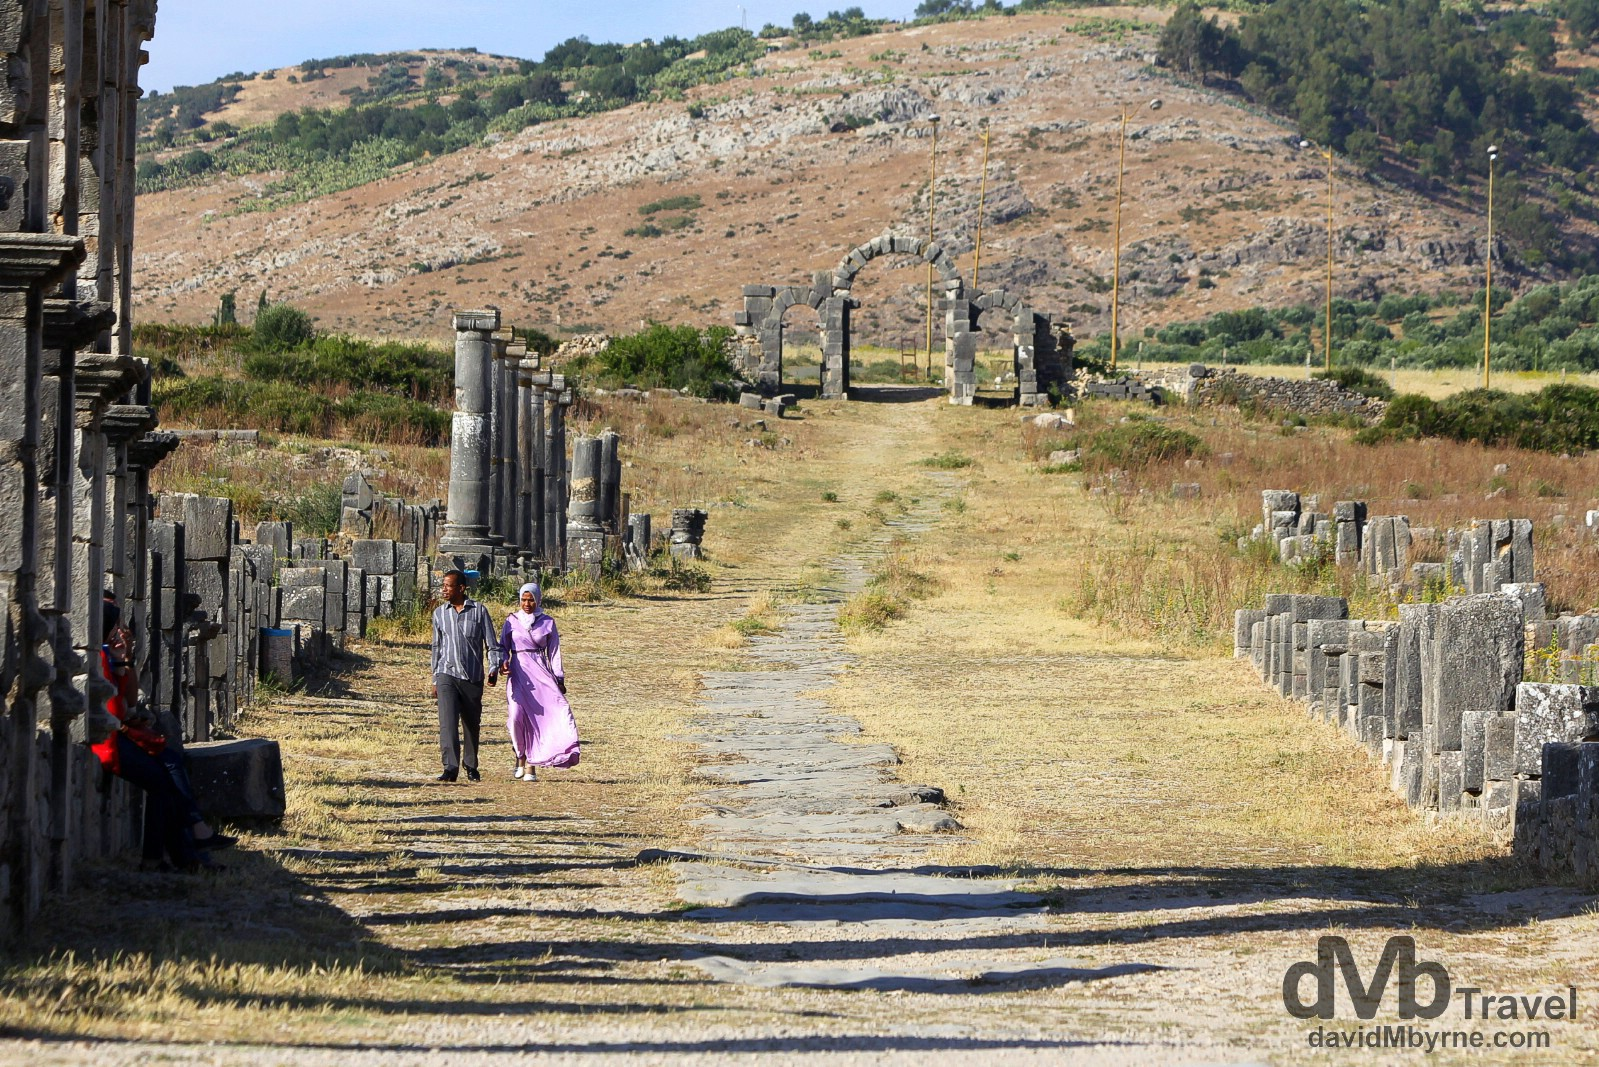 Decumanus Maximus, the main street of the UNESCO-listed Roman site of Volubilis in Morocco. May 25th, 2014